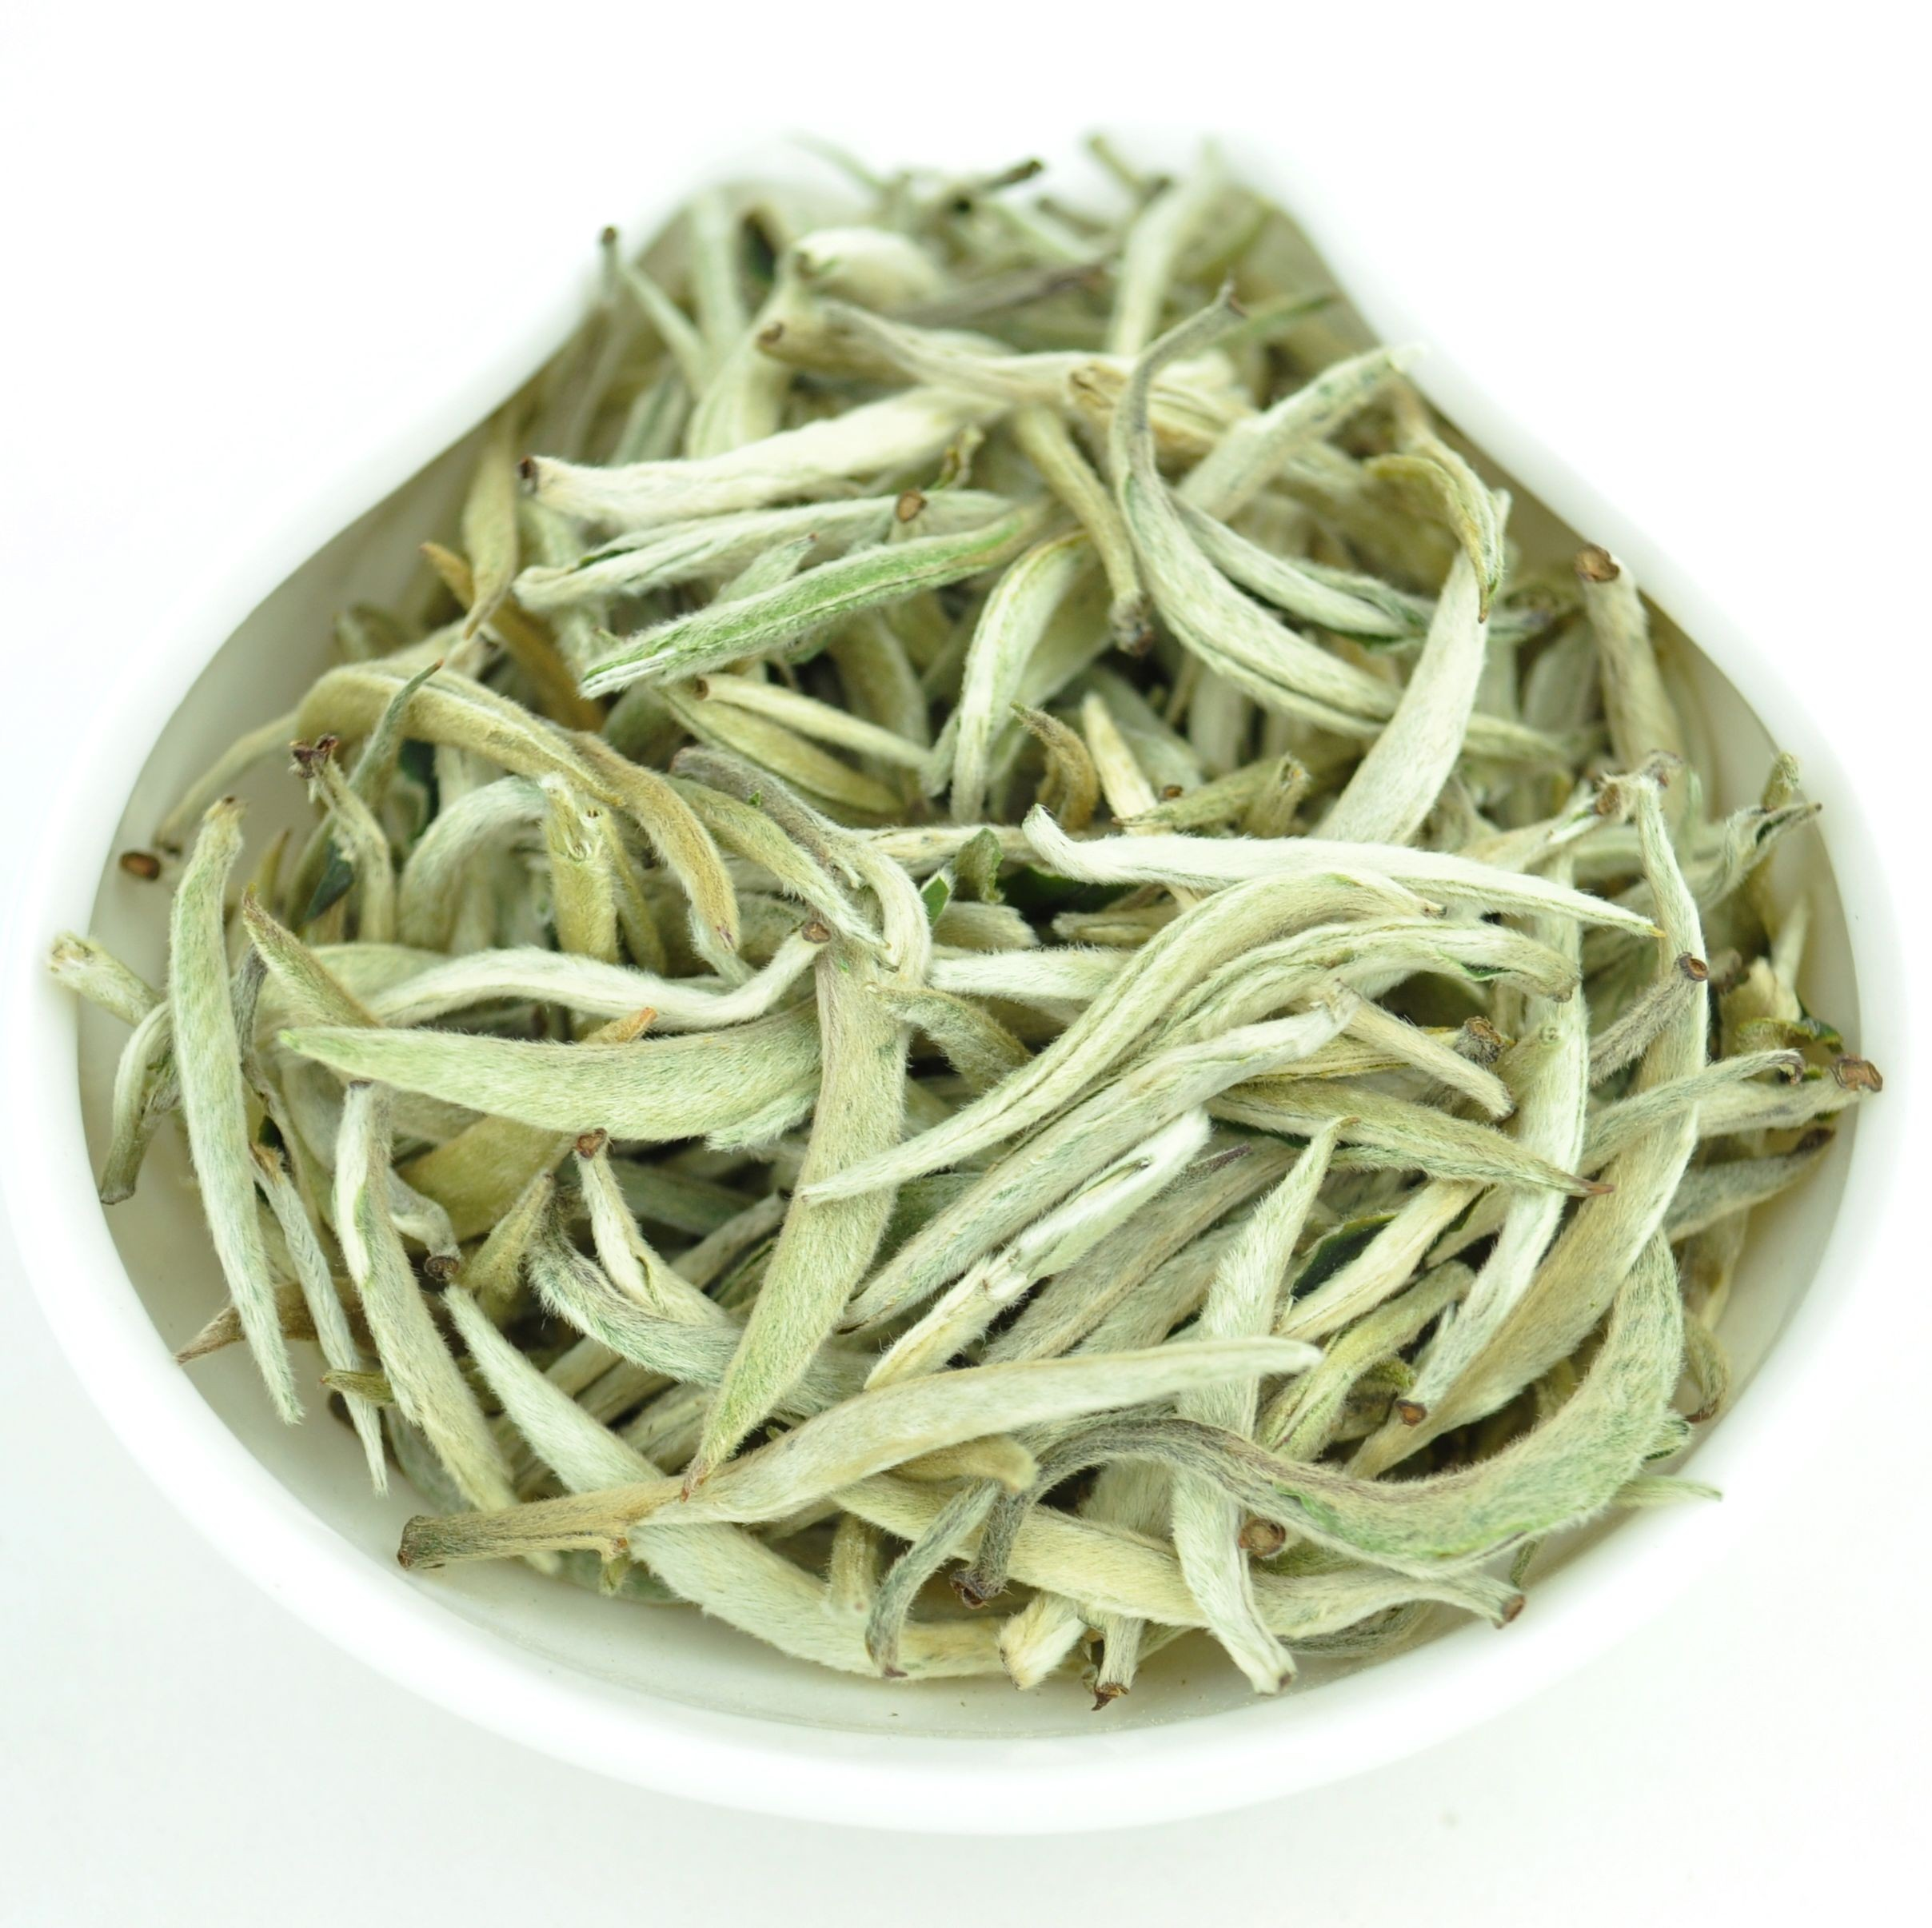 Silver Needles White Tea of Feng Qing * Spring 2016